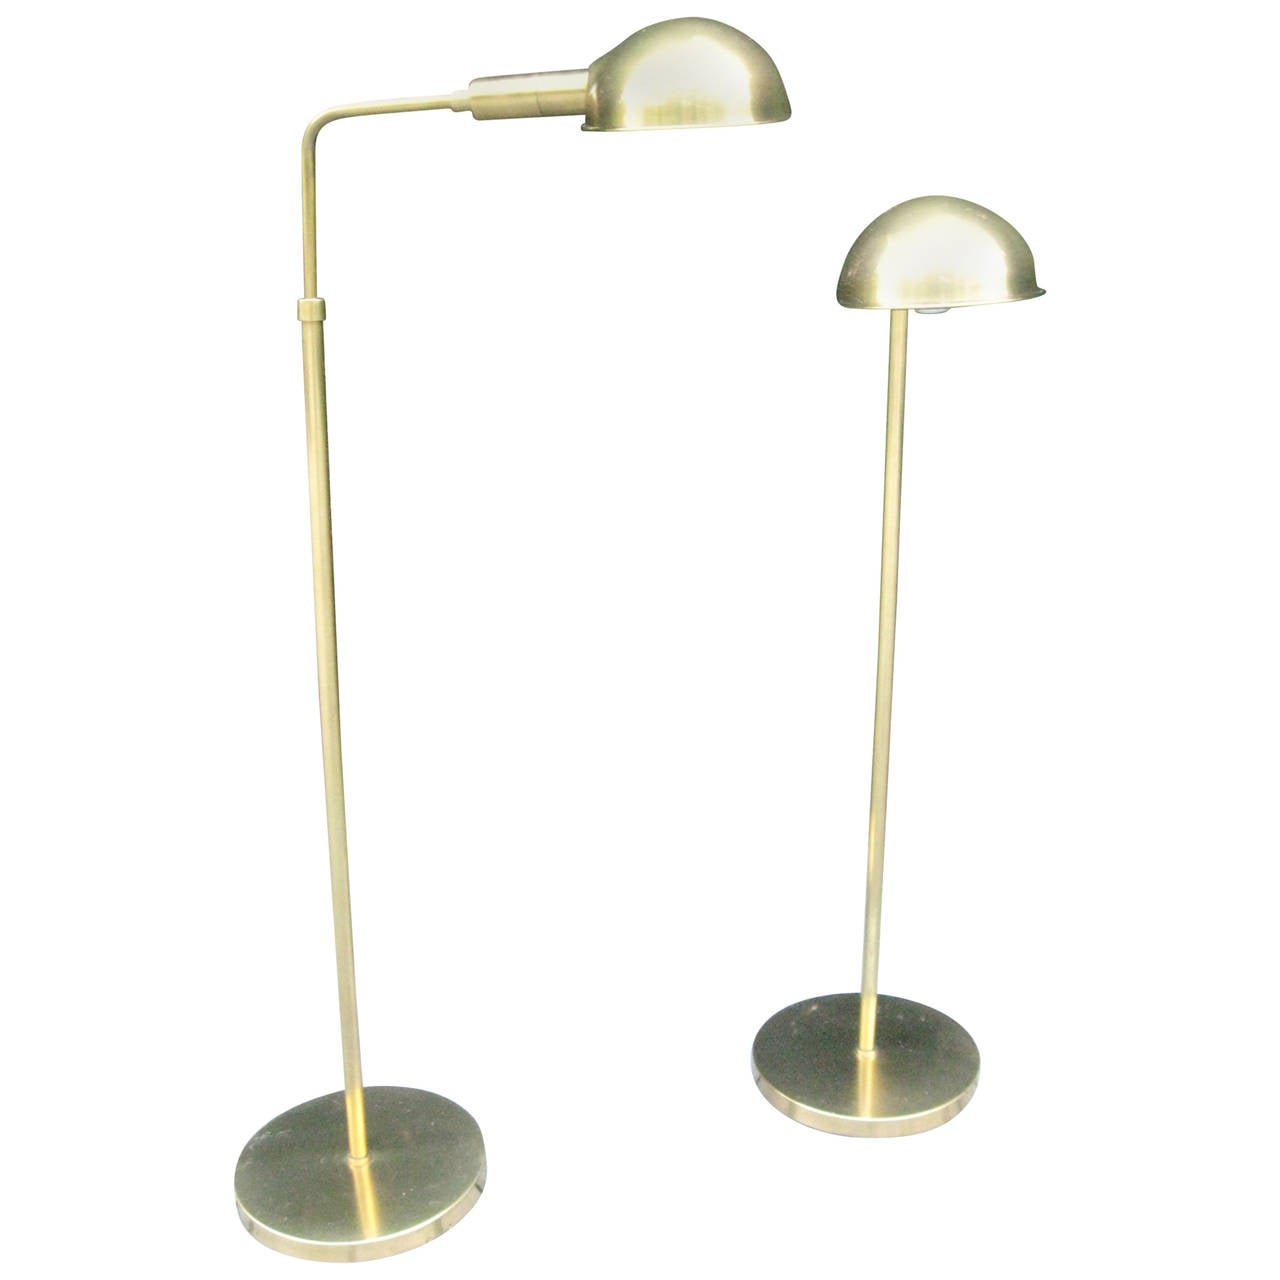 Vintage Pair of Adjustable Brass FloorReading Lamps by Chapman For Sale at 1stdibs